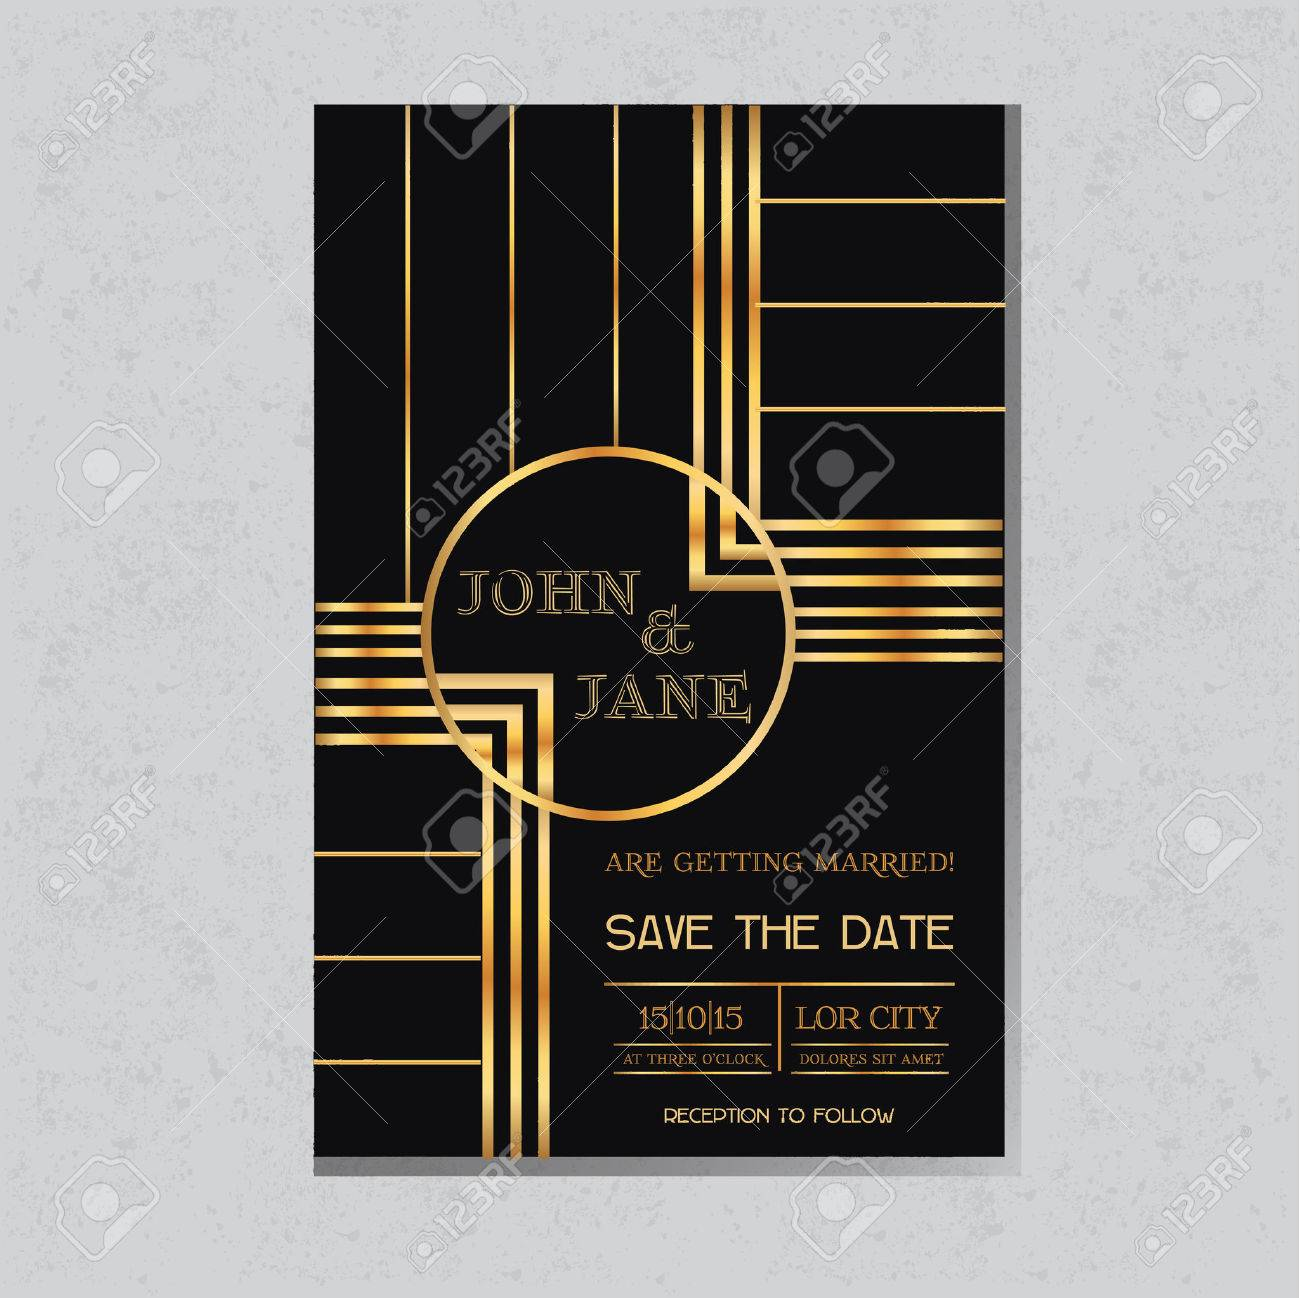 Save The Date Wedding Invitation Card In Art Deco Design Royalty